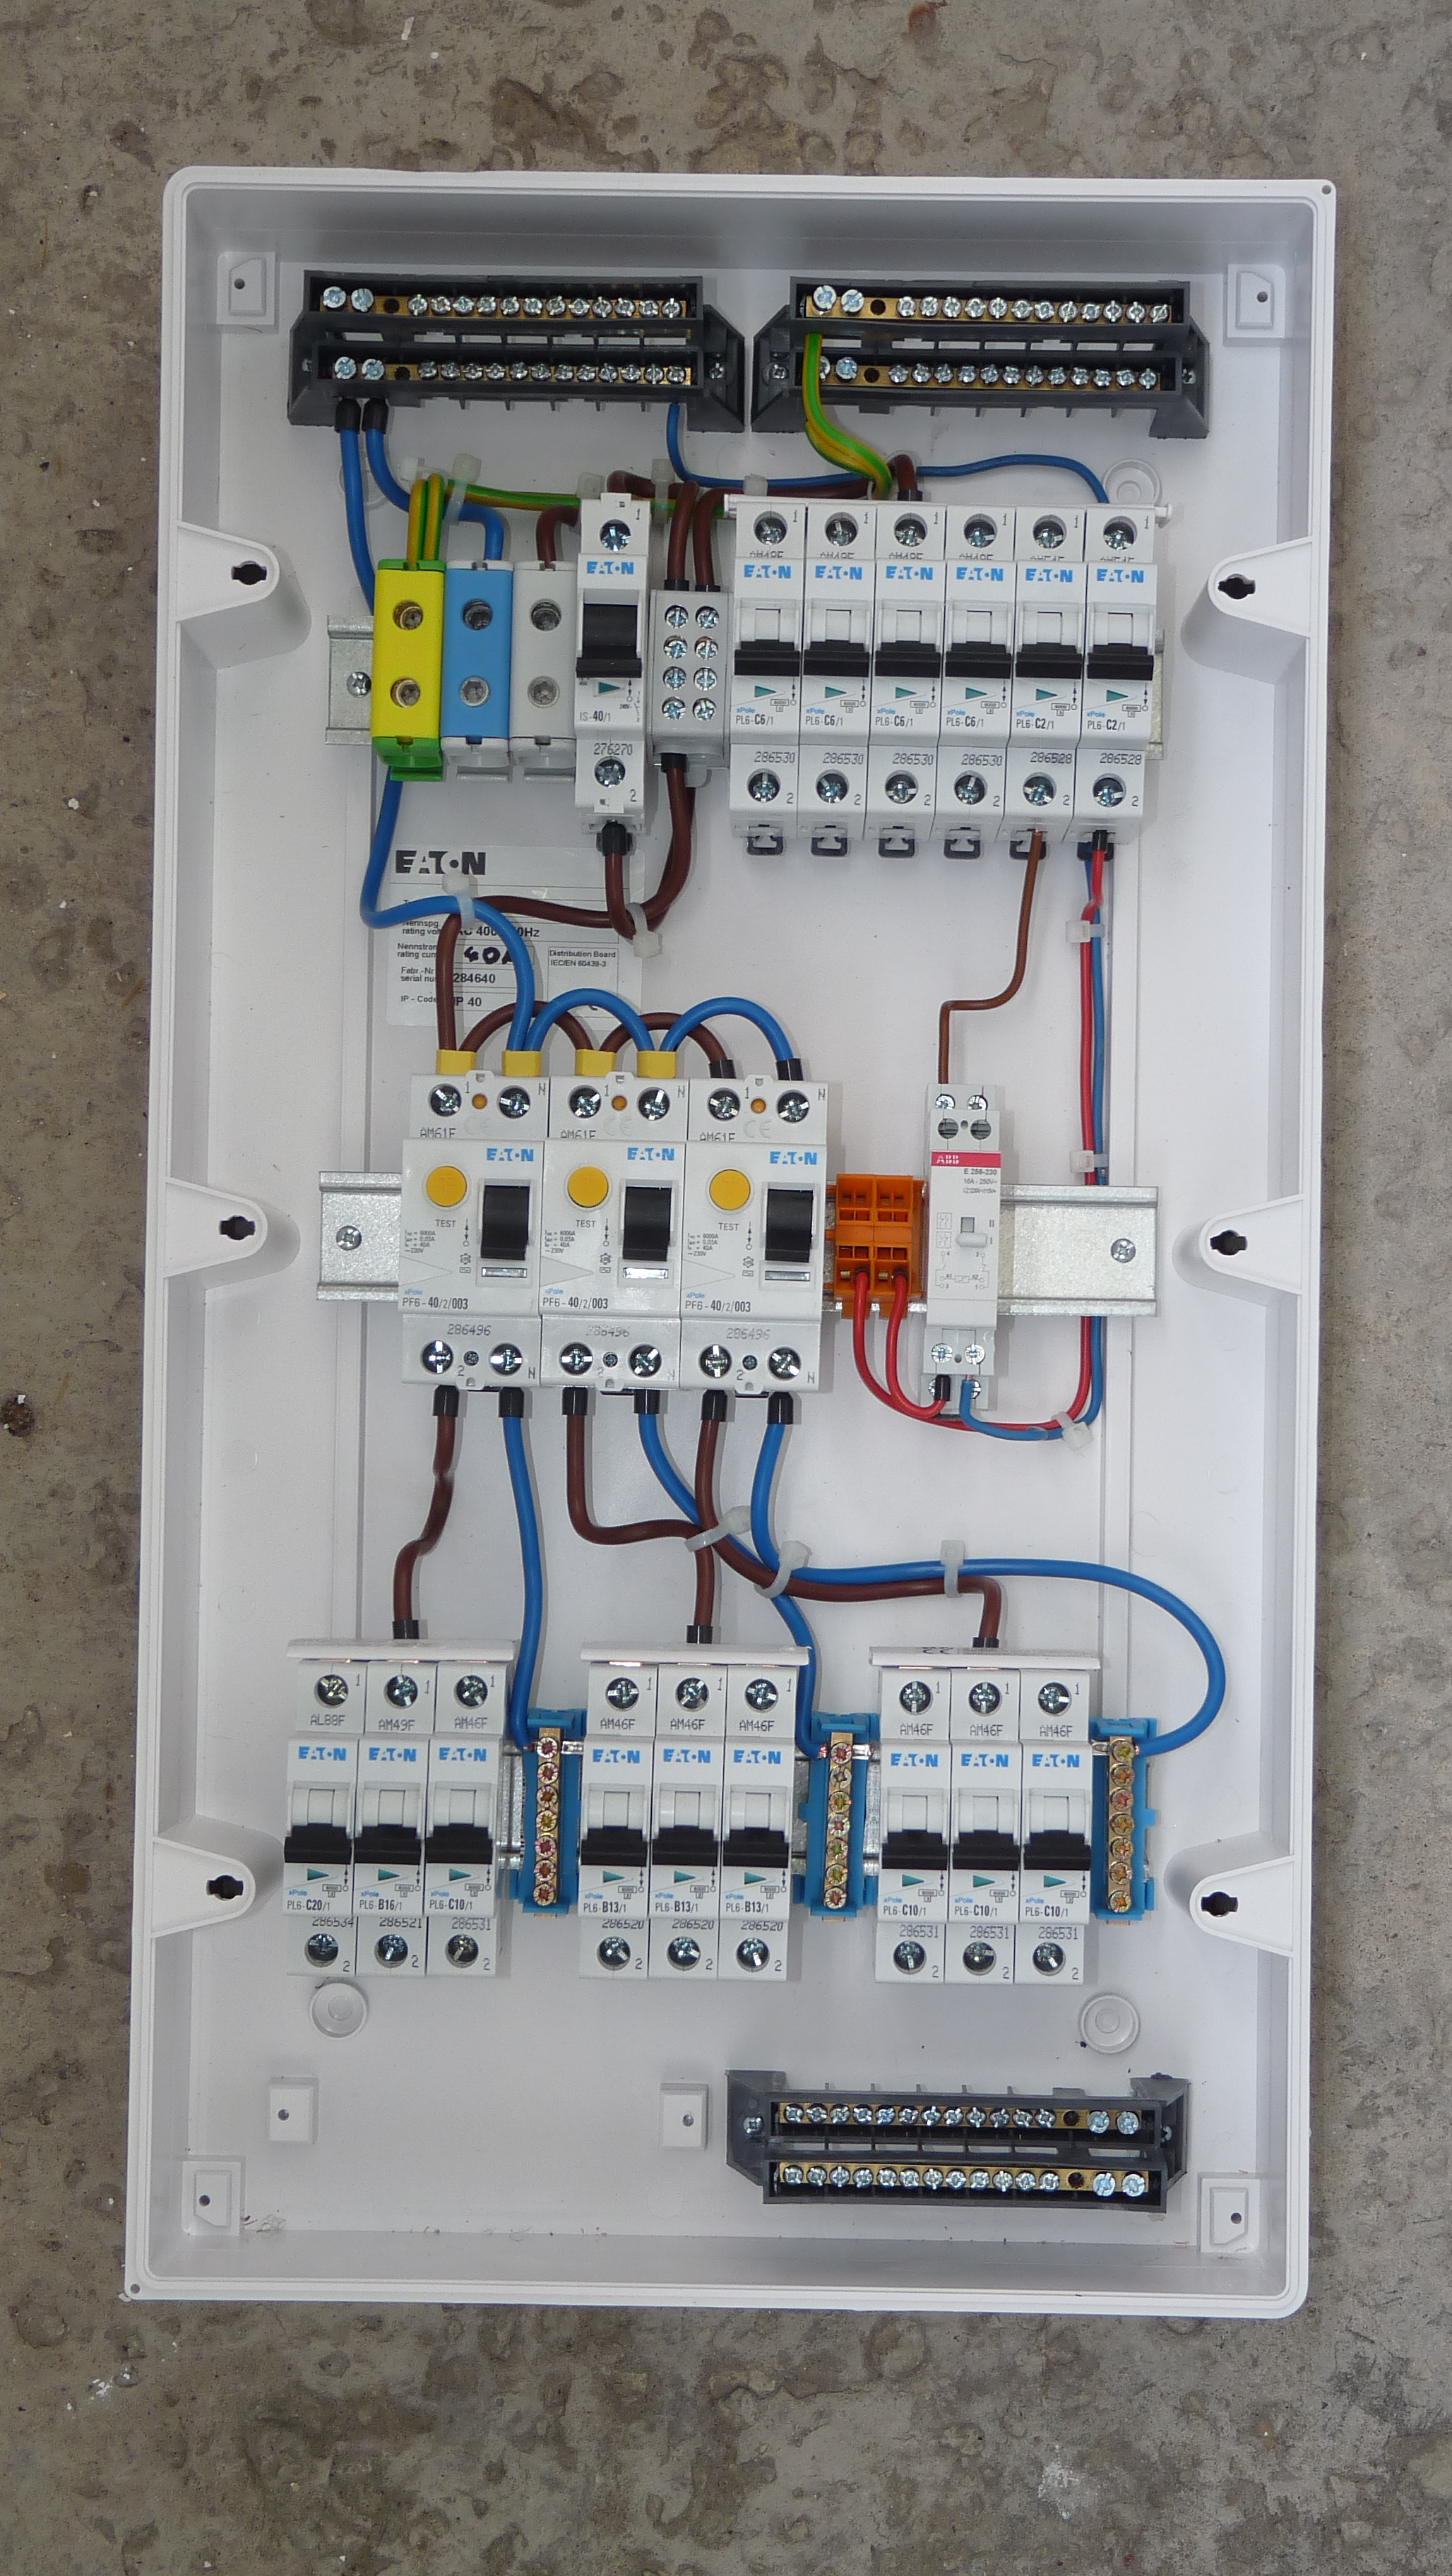 Chart For Fuse Box For House Starting Know About Wiring Diagram \u2022  Mariah Boat Fuse Box Chart Chart For Fuse Box For House